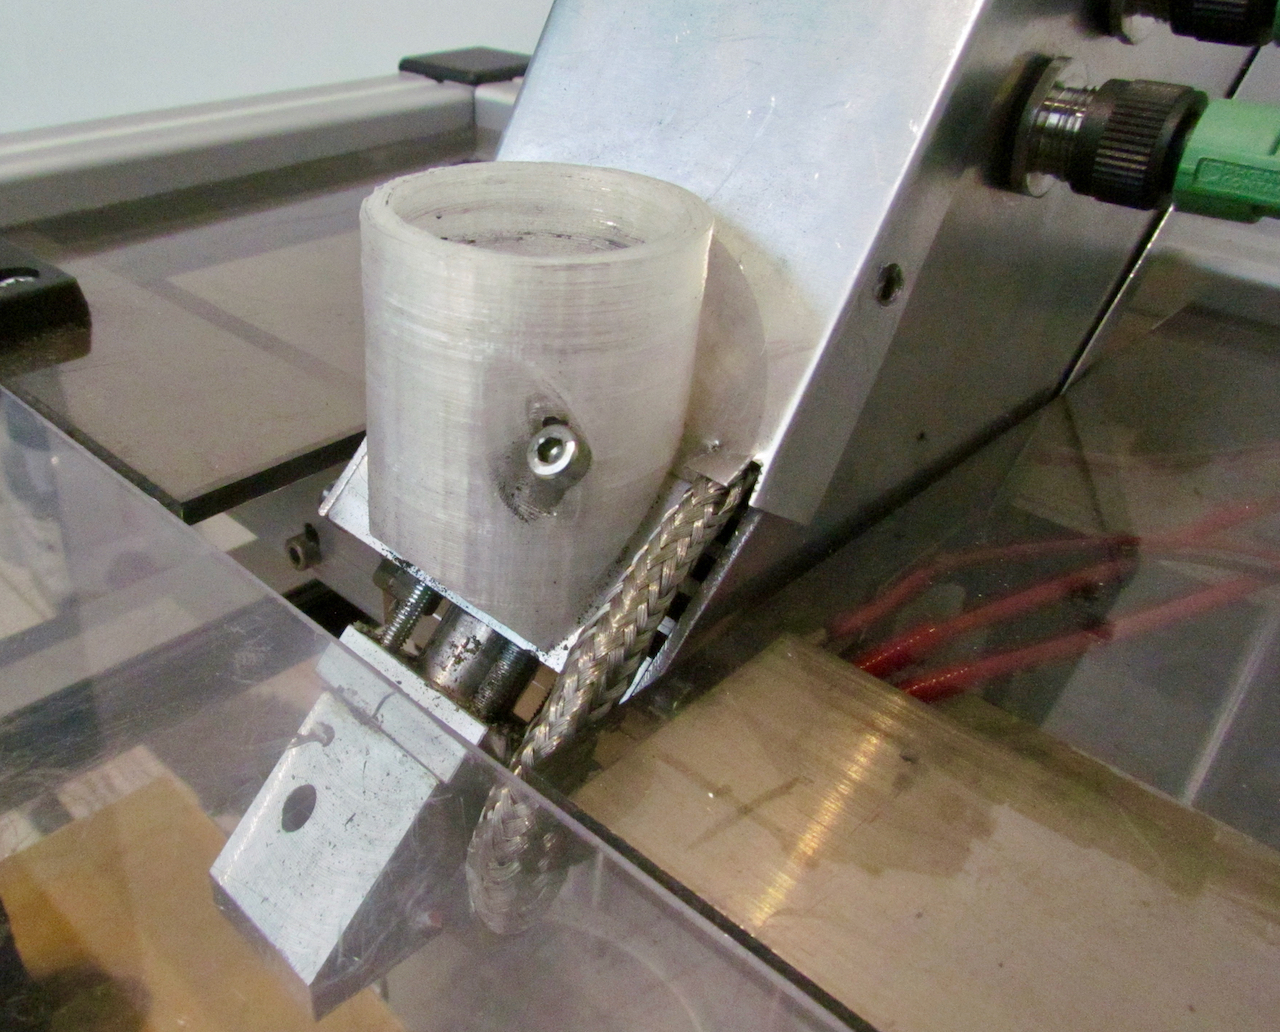 , Has 3d-figo Figured Out How To 3D Print Any Material?